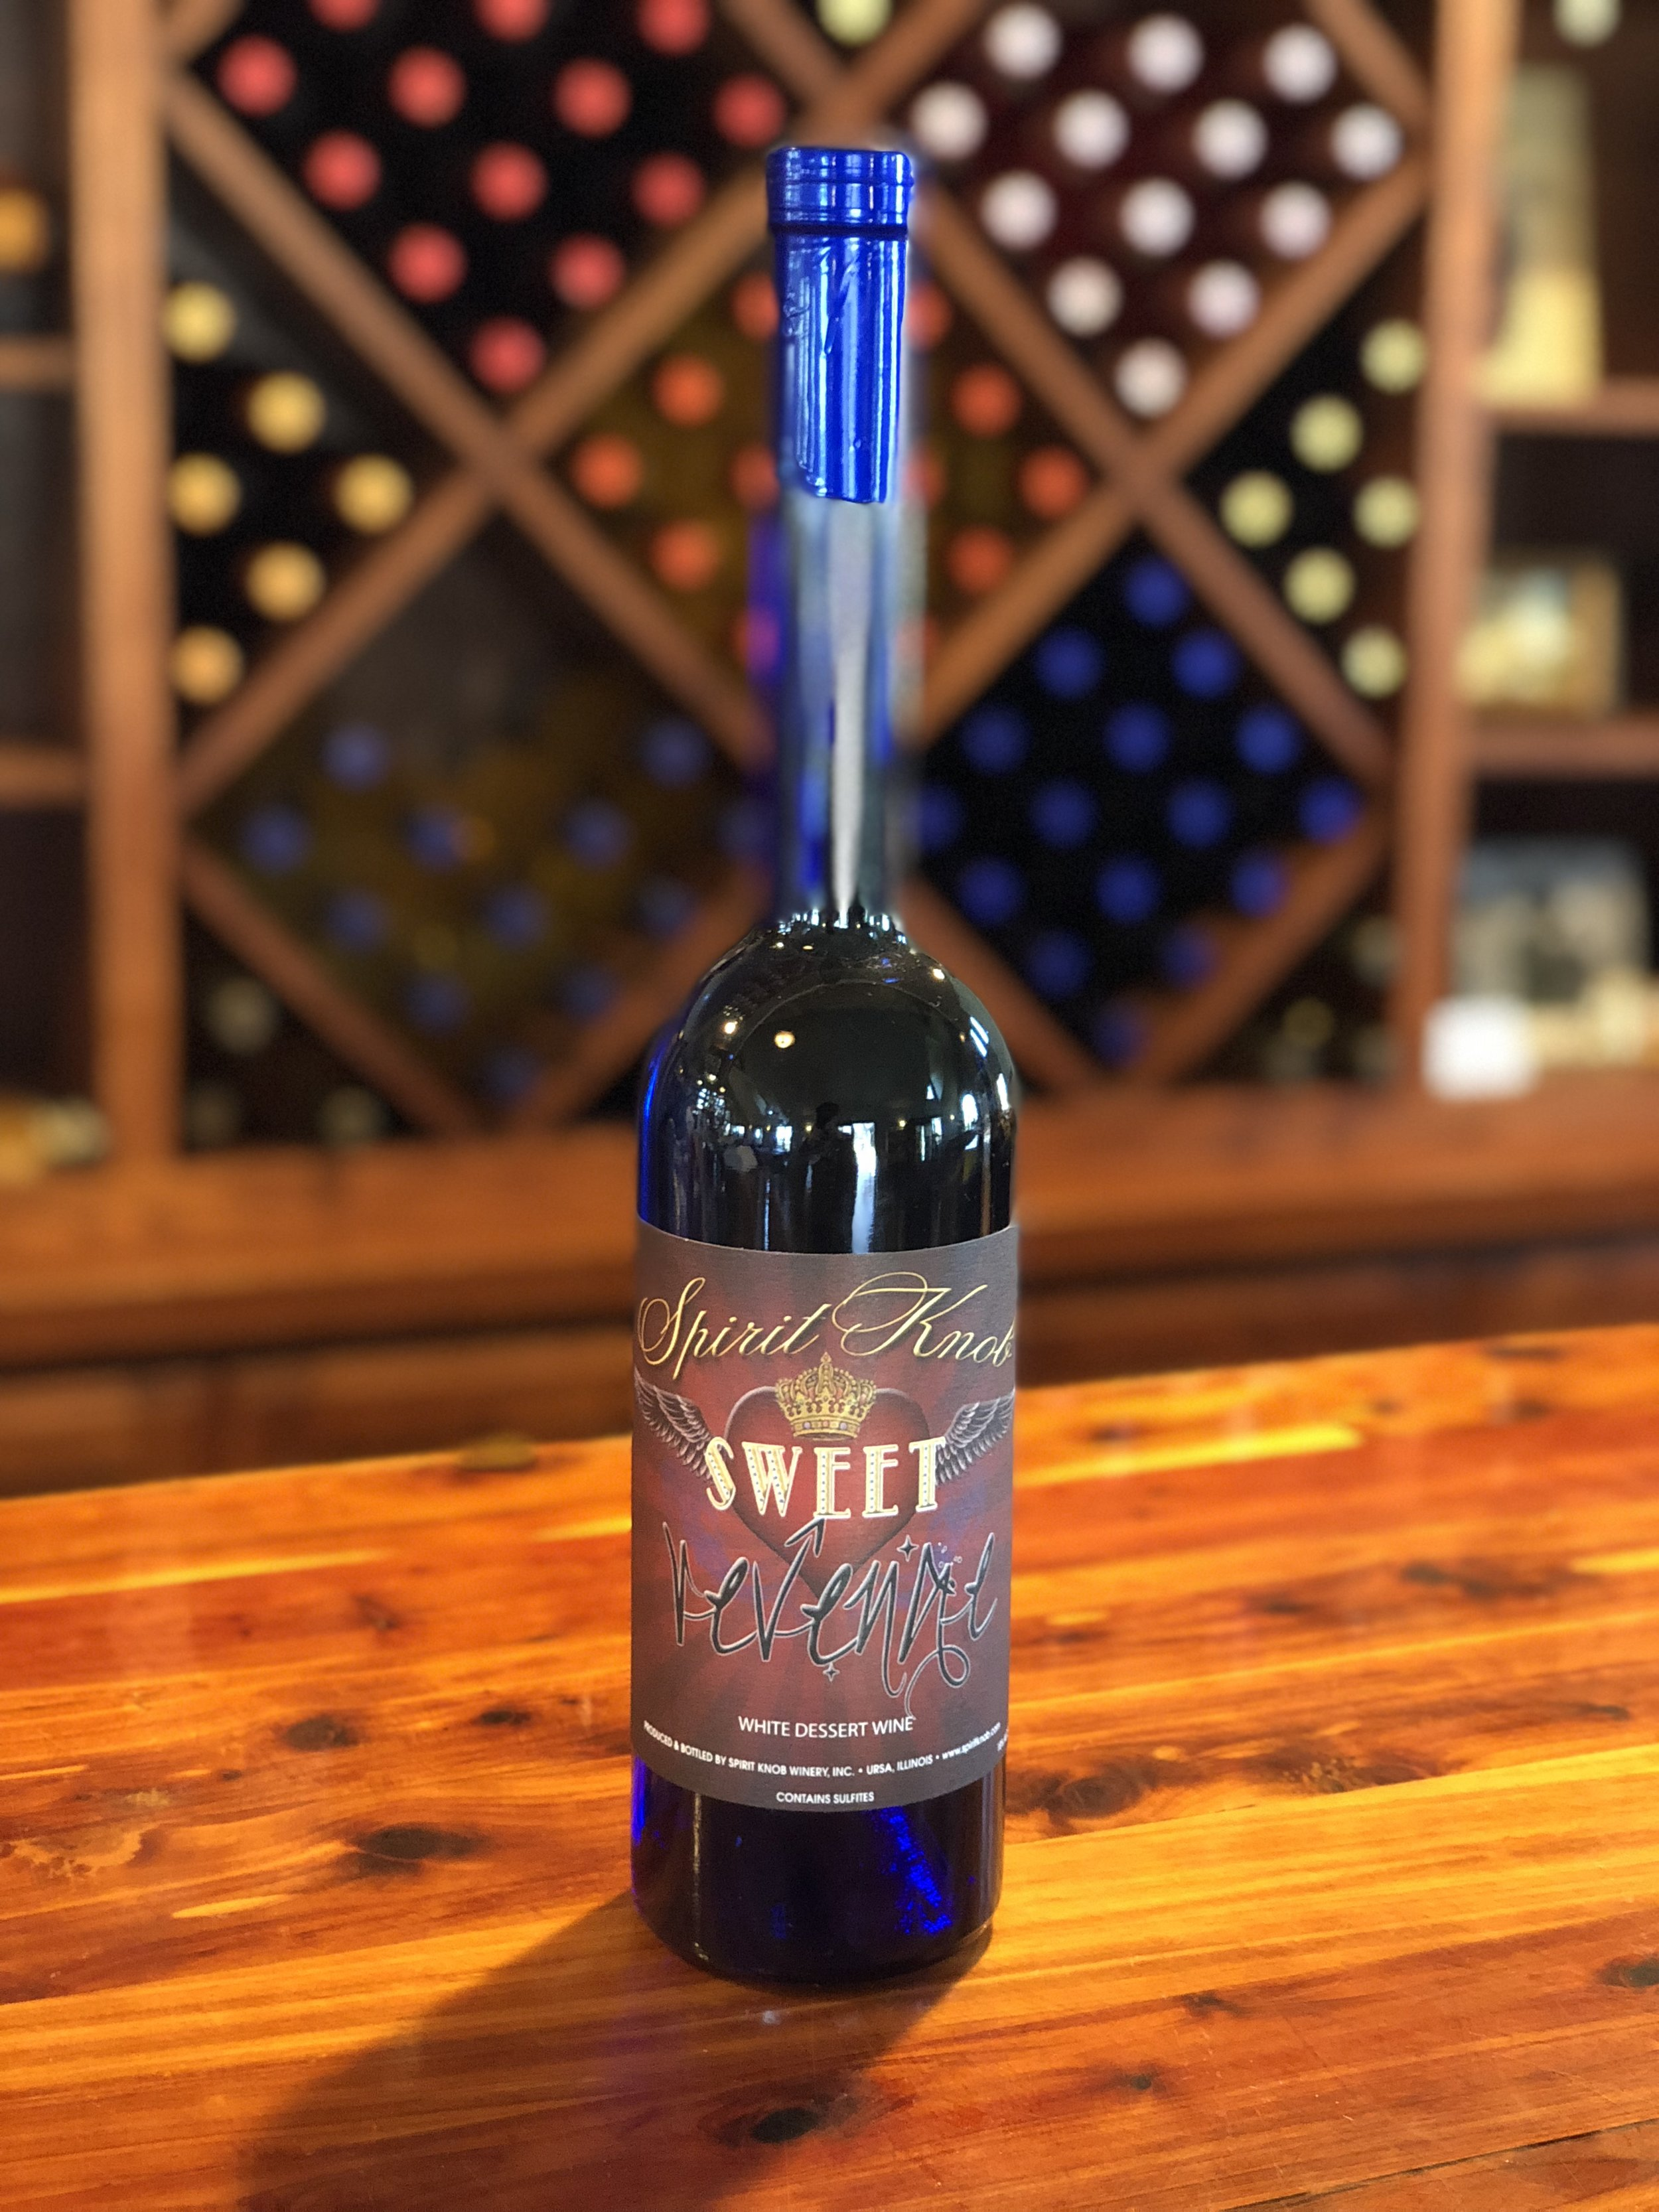 Sweet Revenge - This sweet white dessert wine will surely get the party started. Great bachelorette toasting!Click here to buy now!